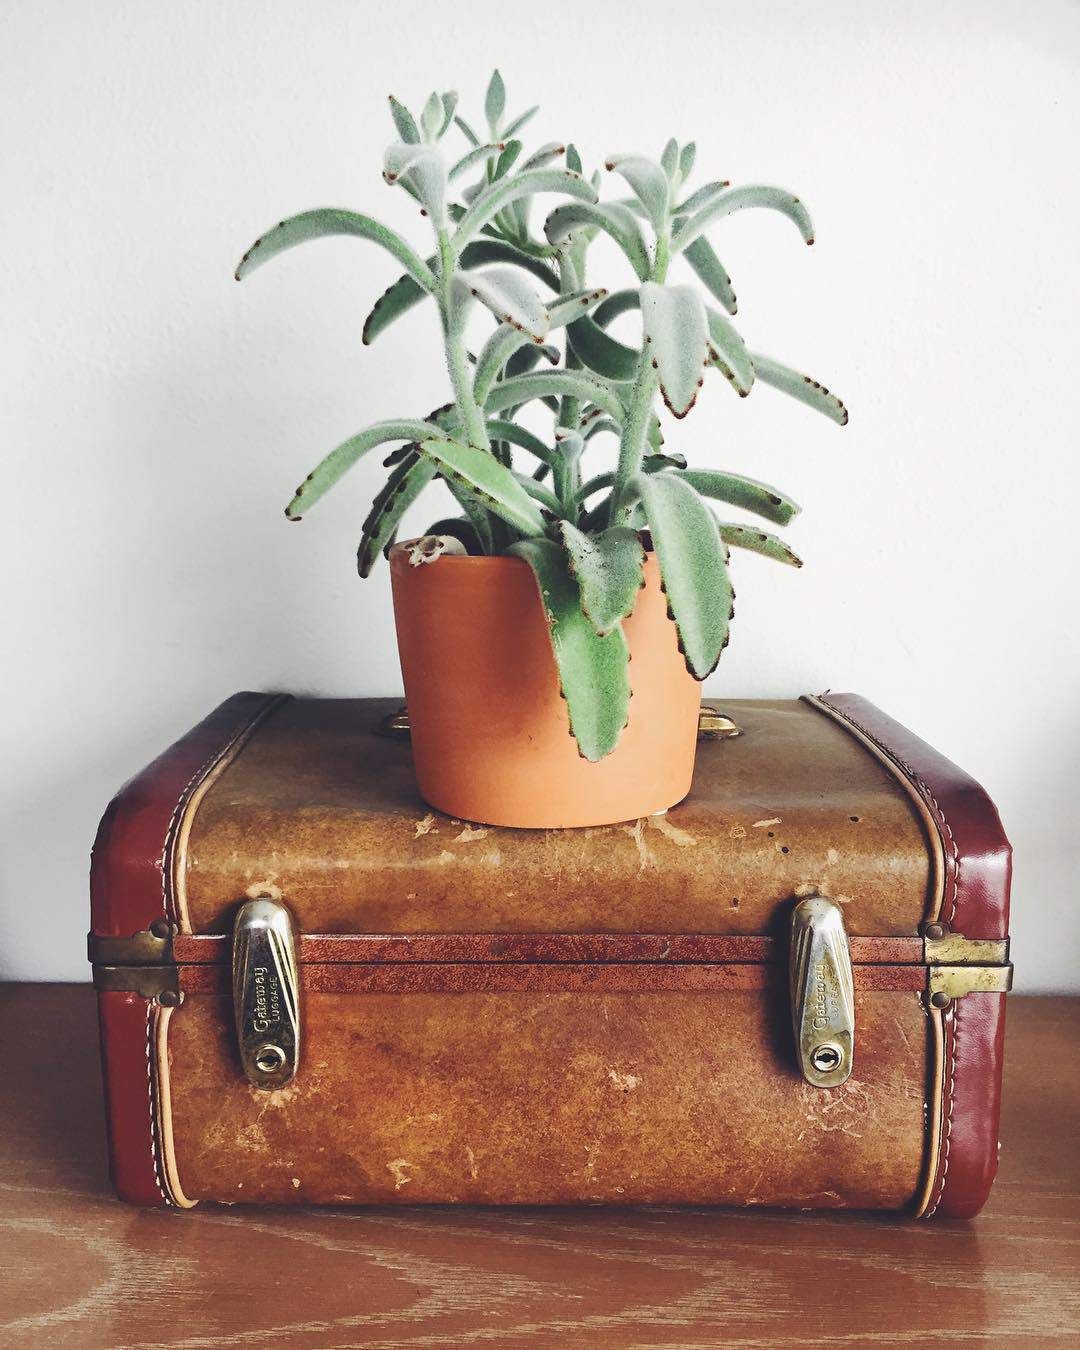 10 Creative Ways to Decorate with Vintage Suitcases b88c4c6a48386